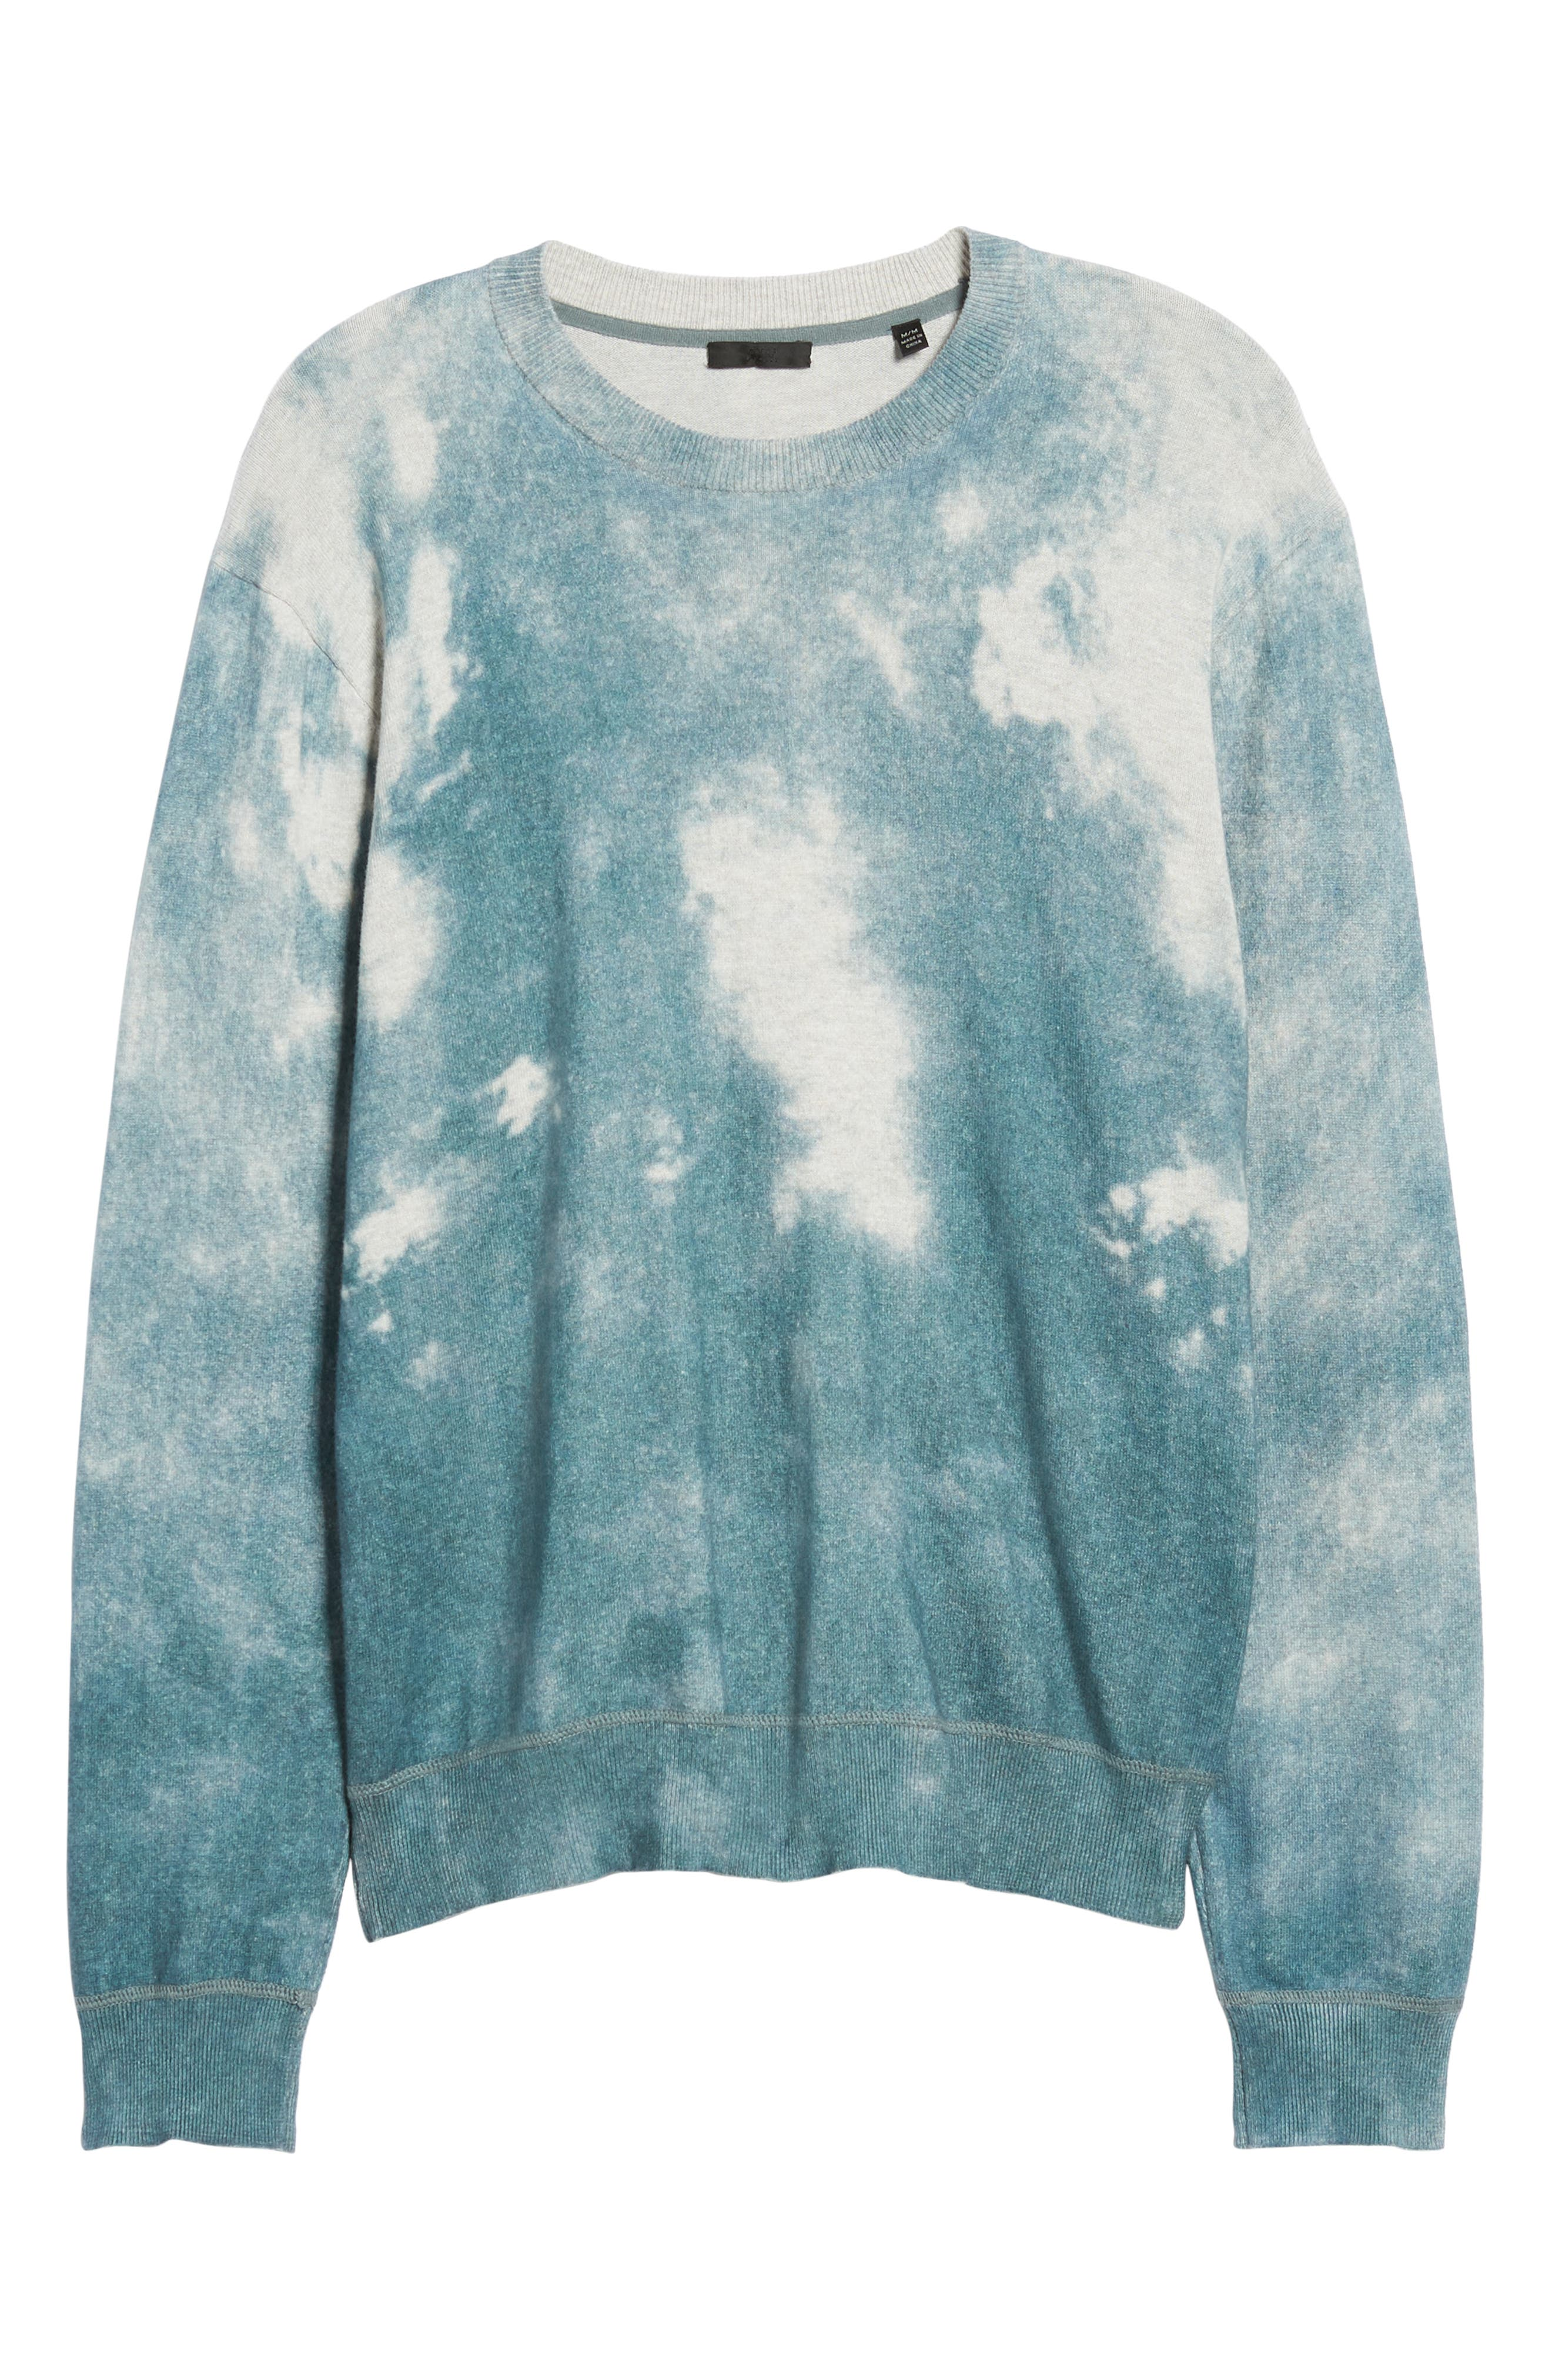 ATM ANTHONY THOMAS MELILLO,                             Abstract Print Sweater,                             Alternate thumbnail 6, color,                             450